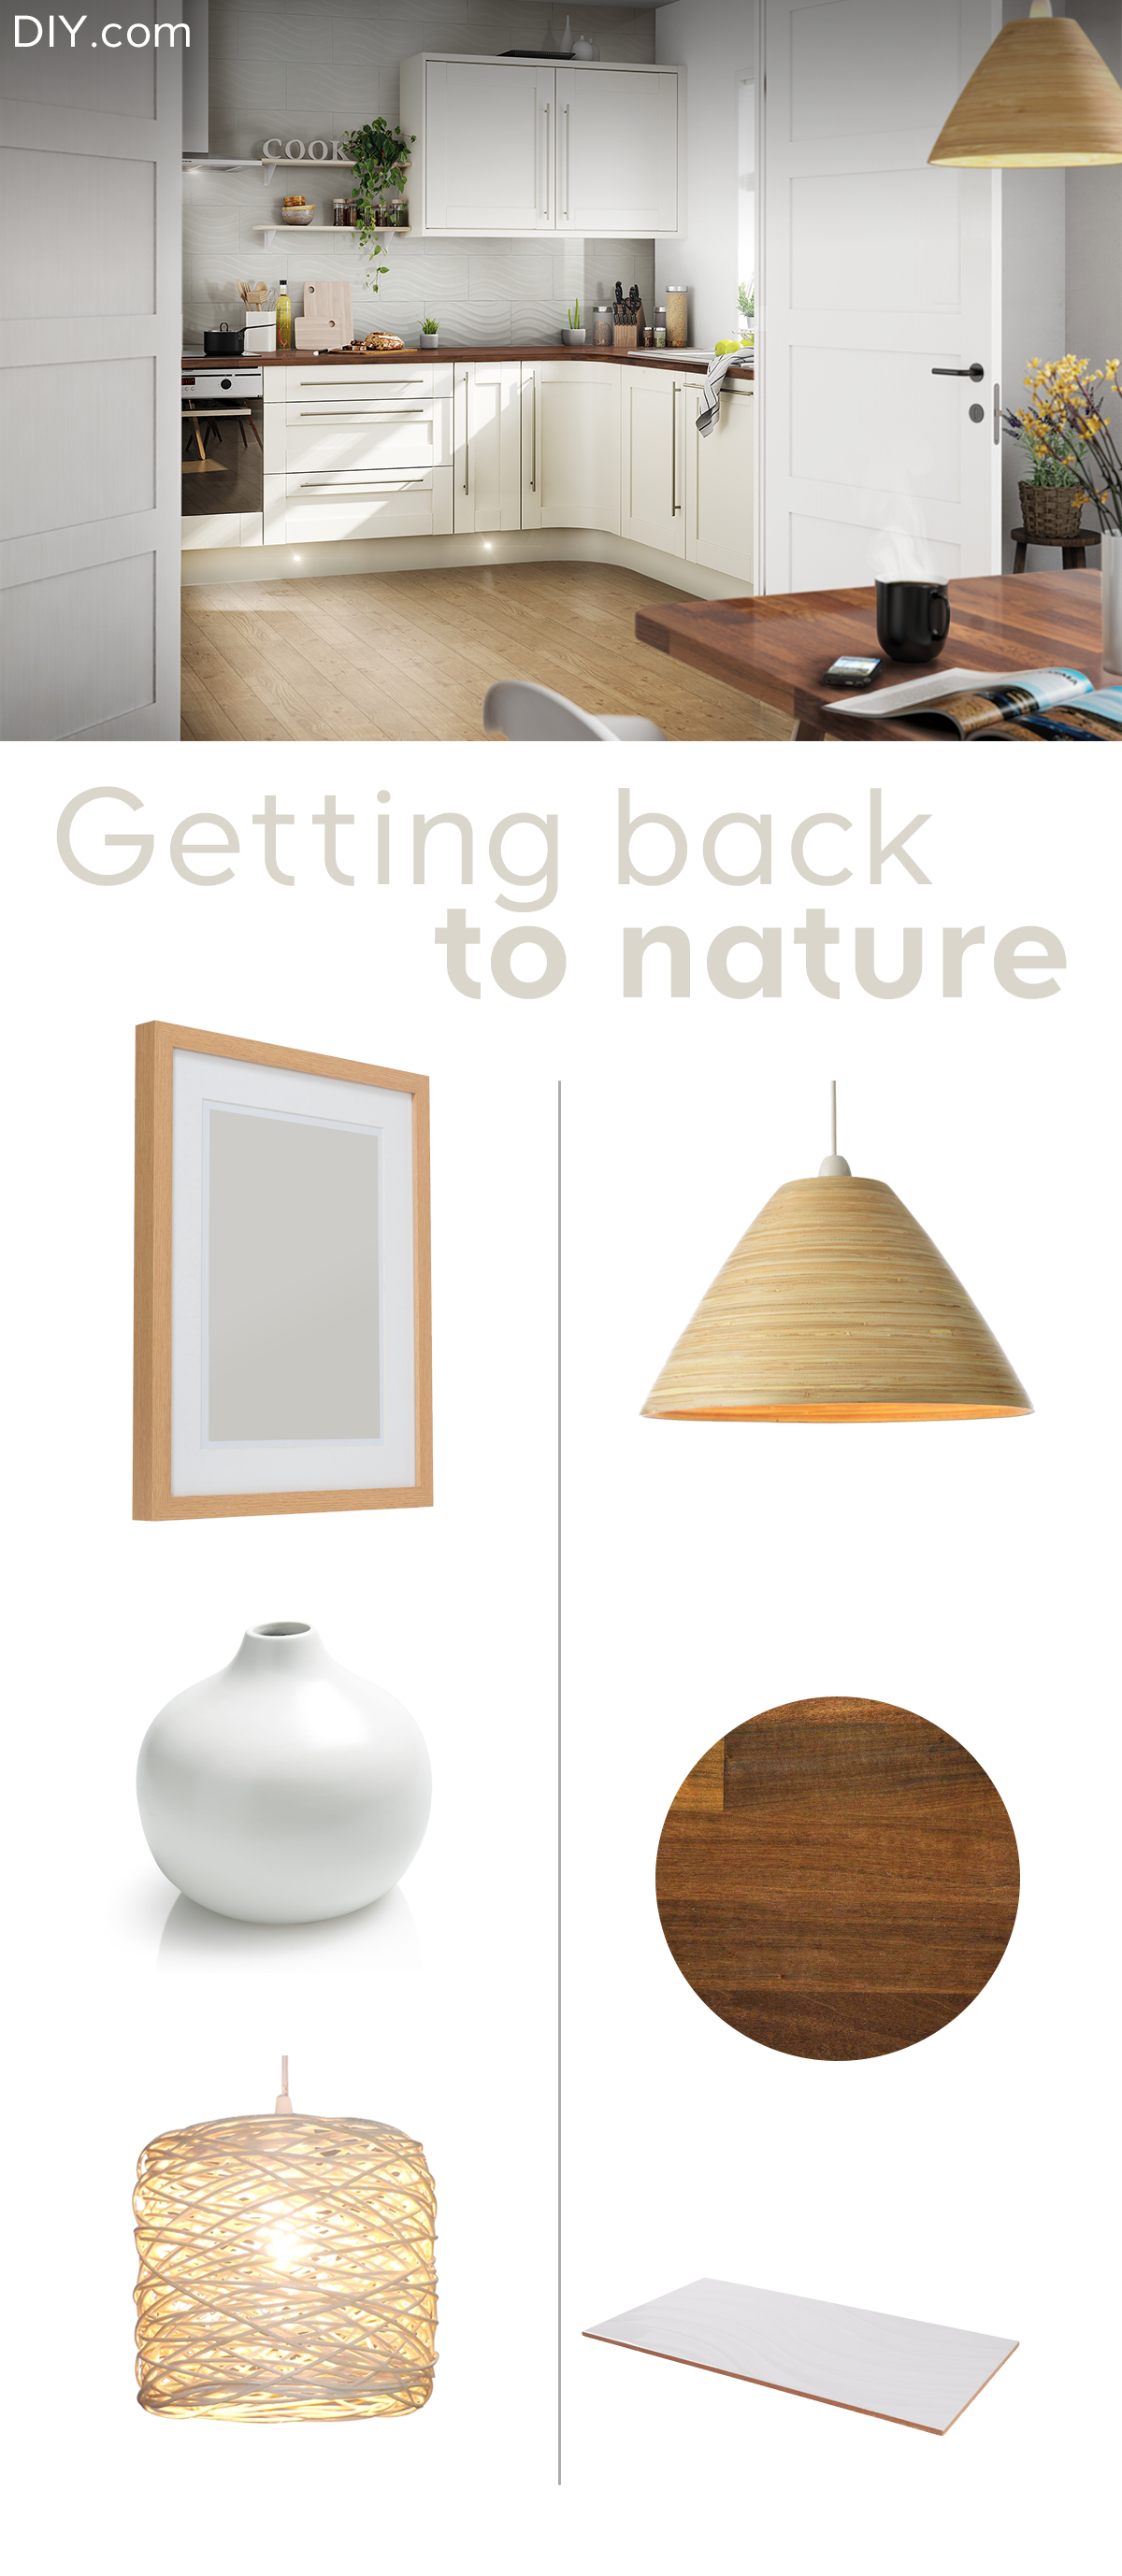 Achieve that back to nature by using sustainable products and ...